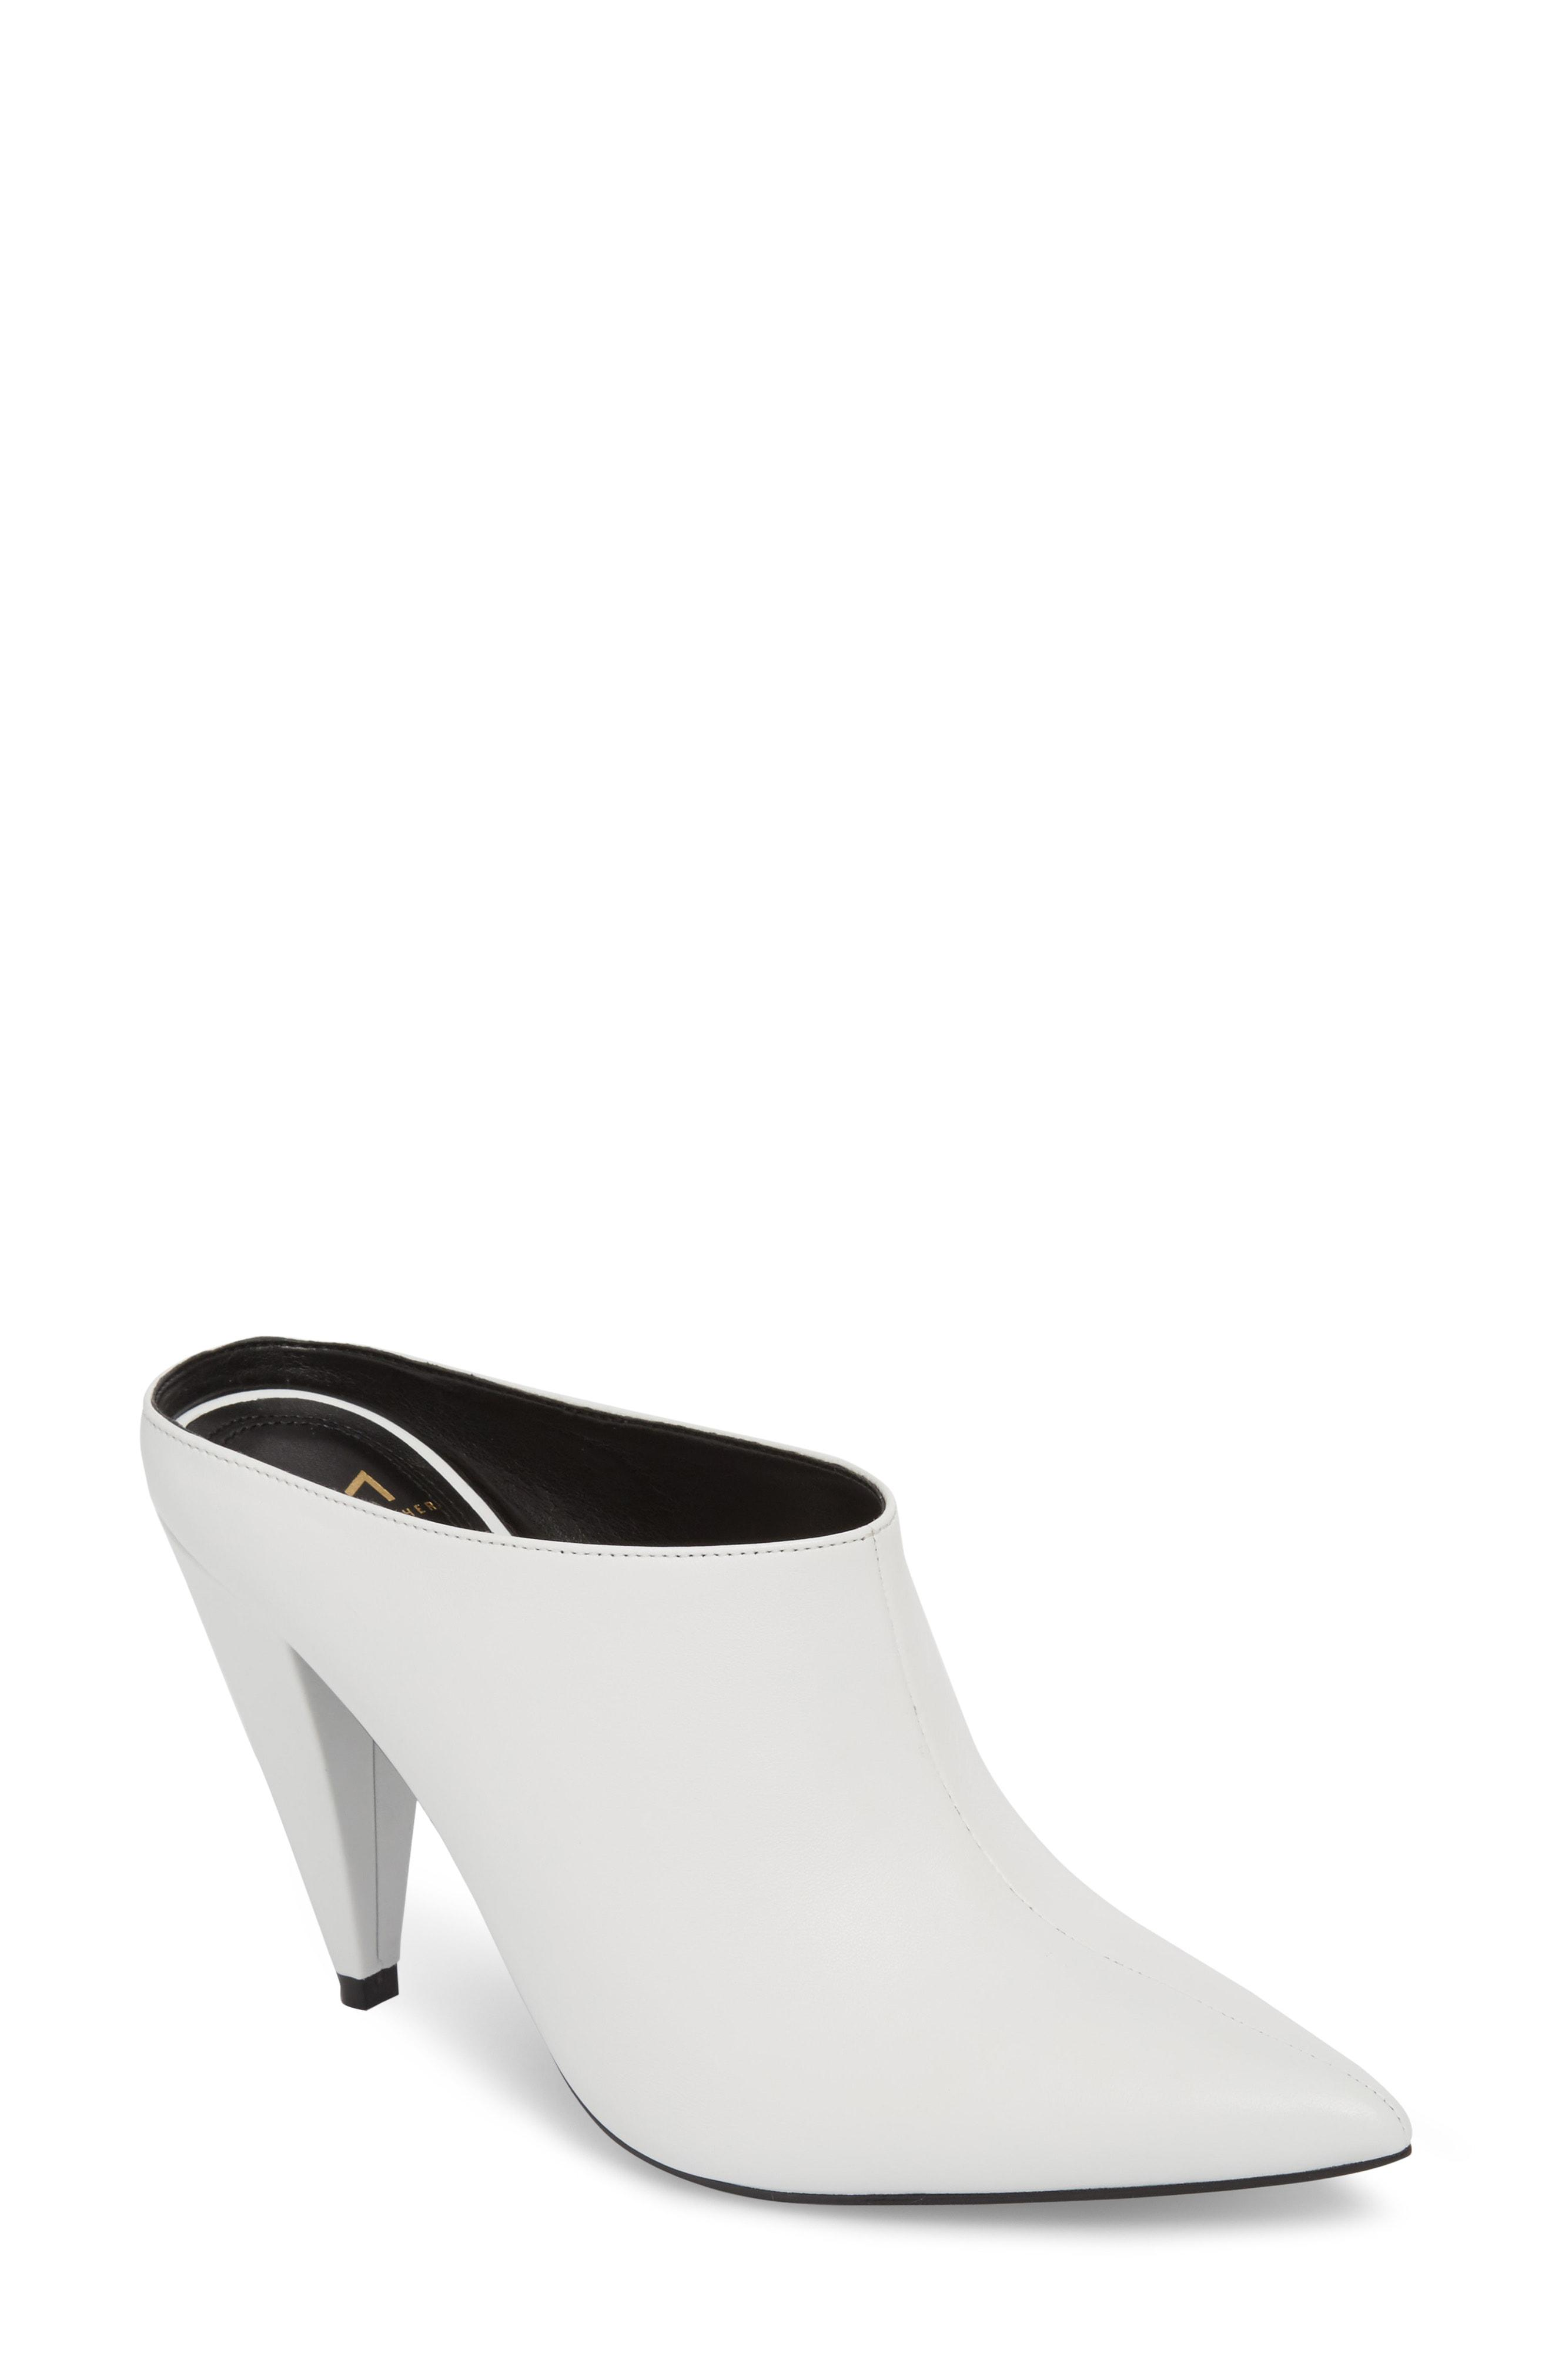 Marc Fisher Harlie Pointy Toe Mule in